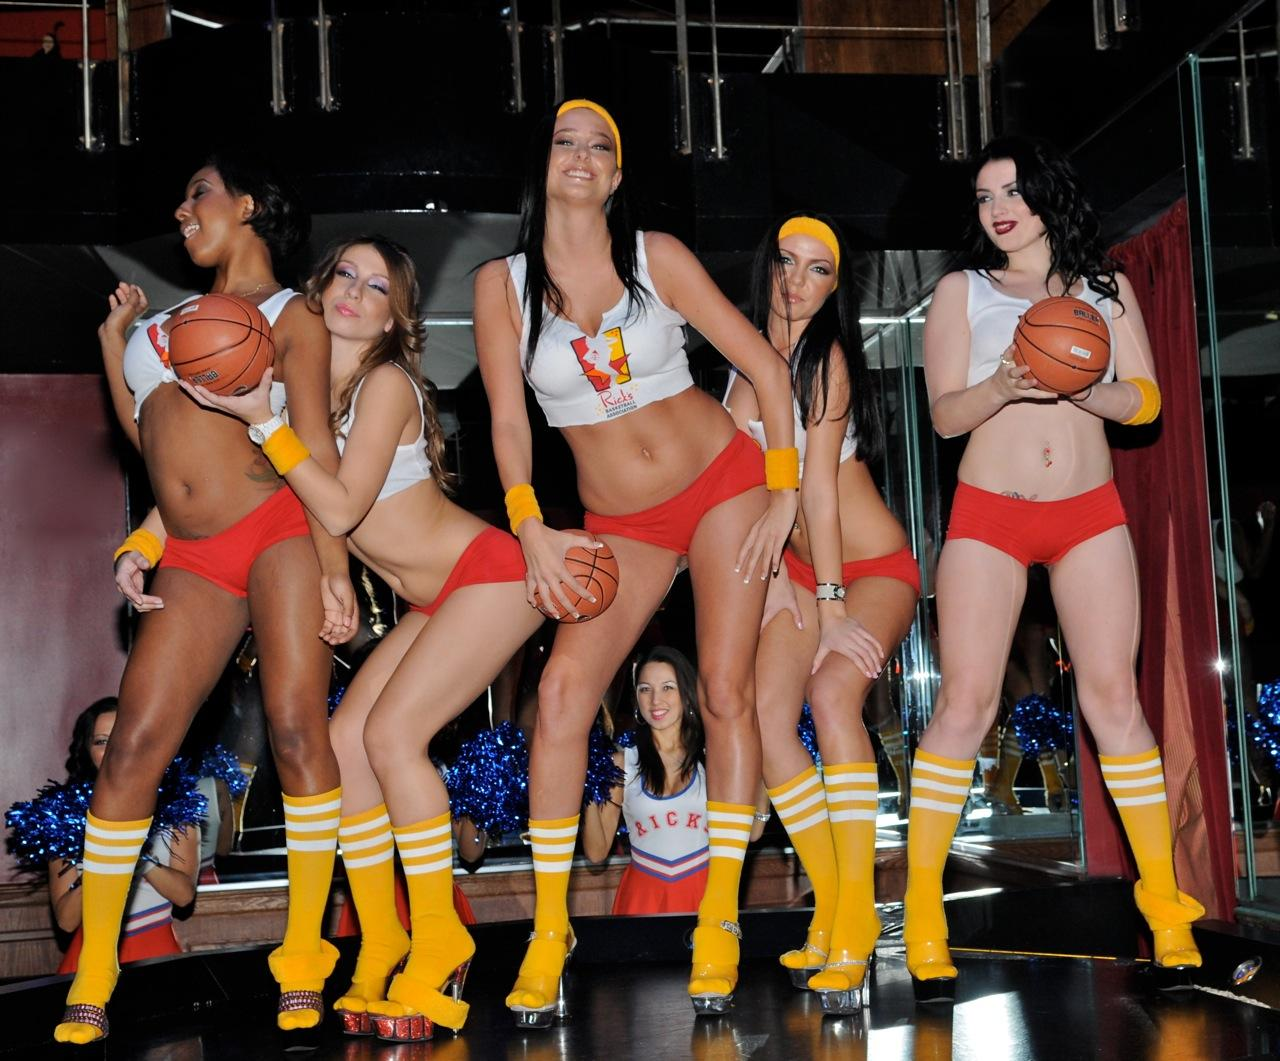 Strippers From Rick S Cabaret Celebrate The Miami Heat